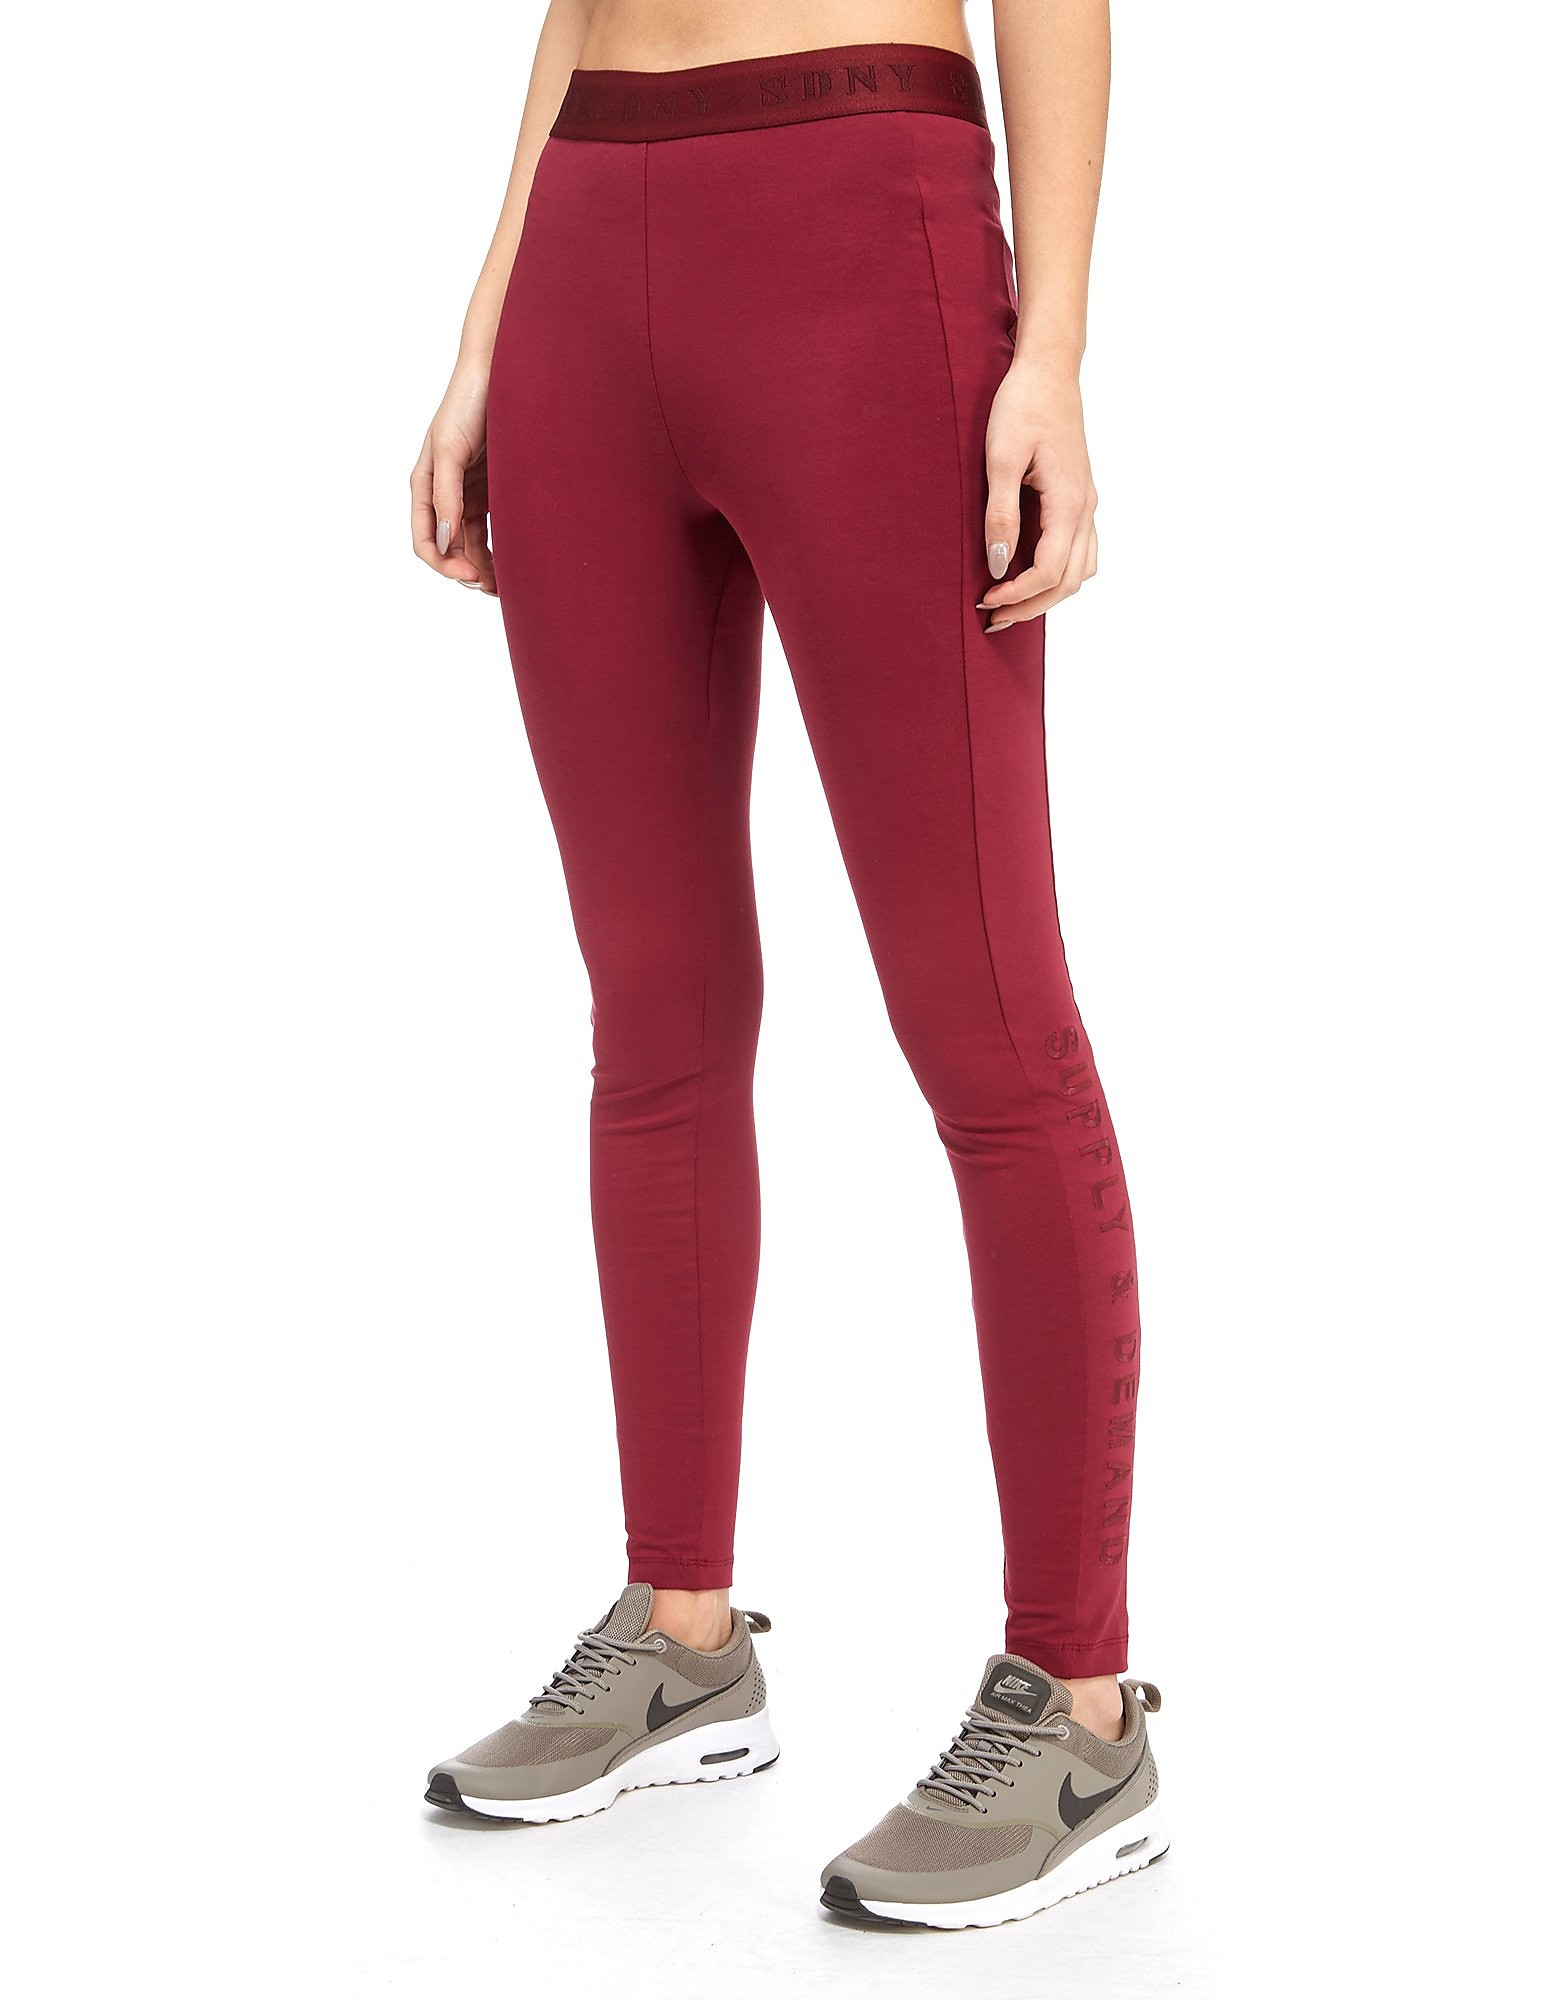 Supply & Demand Leggins Branded Femme